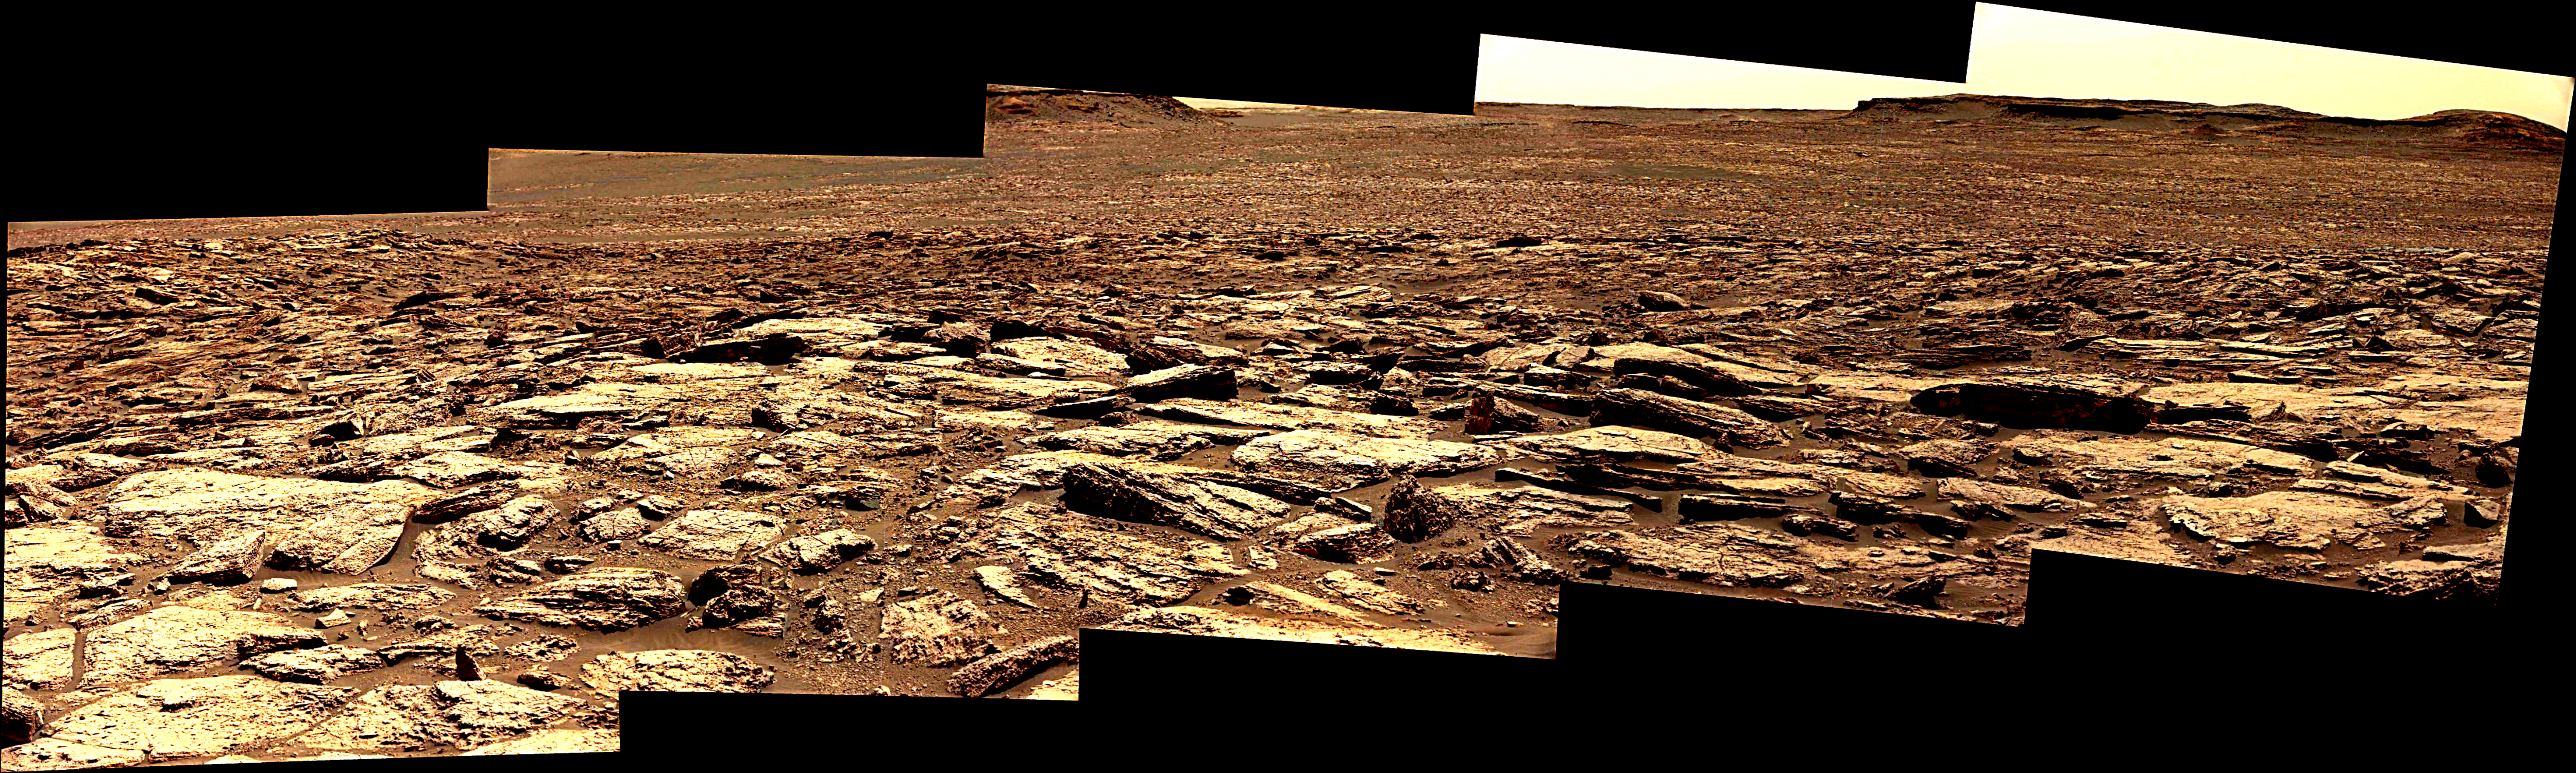 panoramic-curiosity-rover-view-1ee-sol-1489-was-life-on-mars